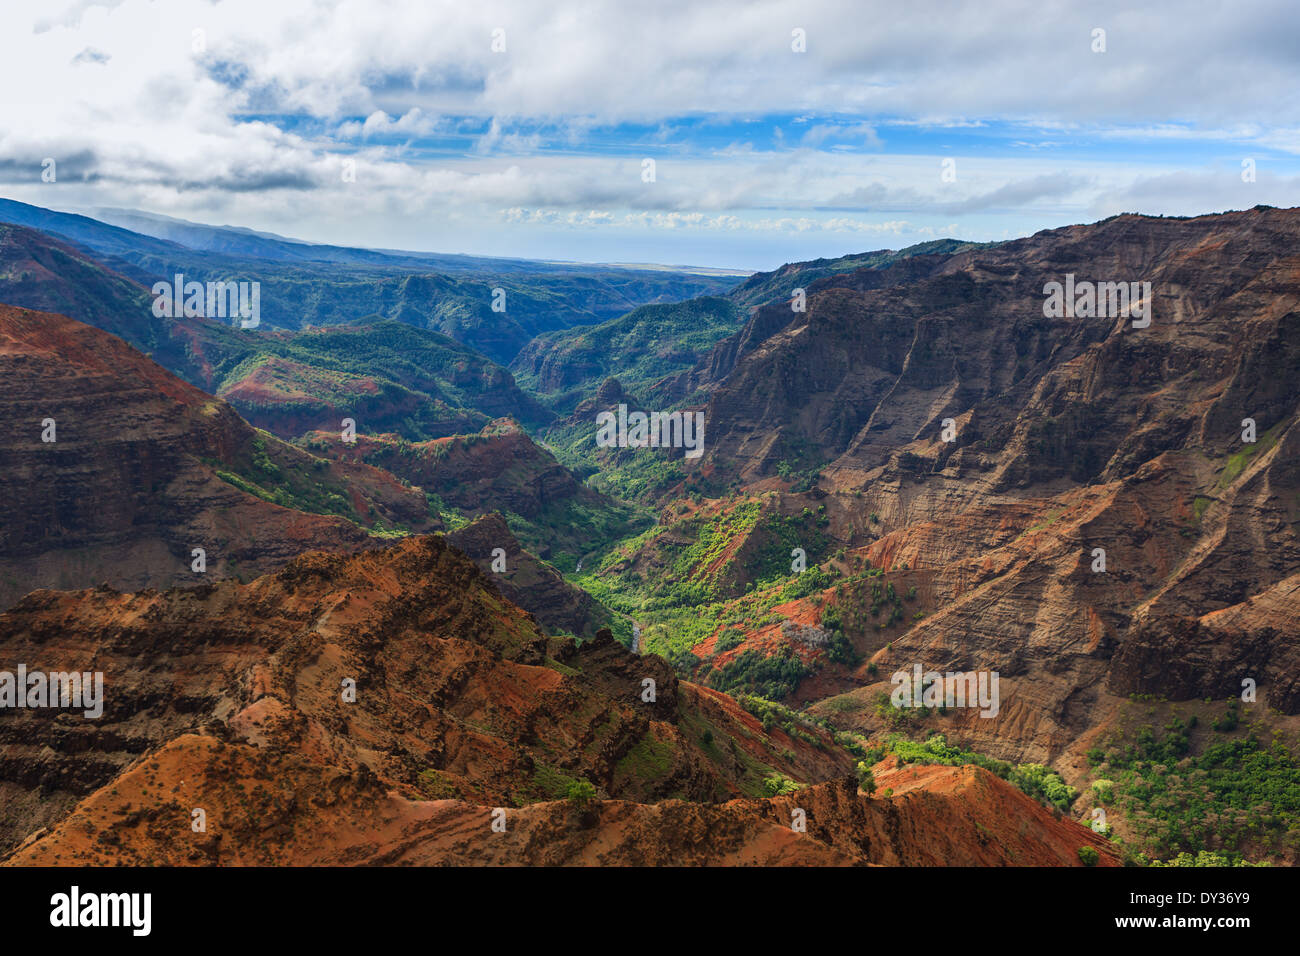 Helicopter view over Waimea Canyon, Kauai, Hawaii - Stock Image